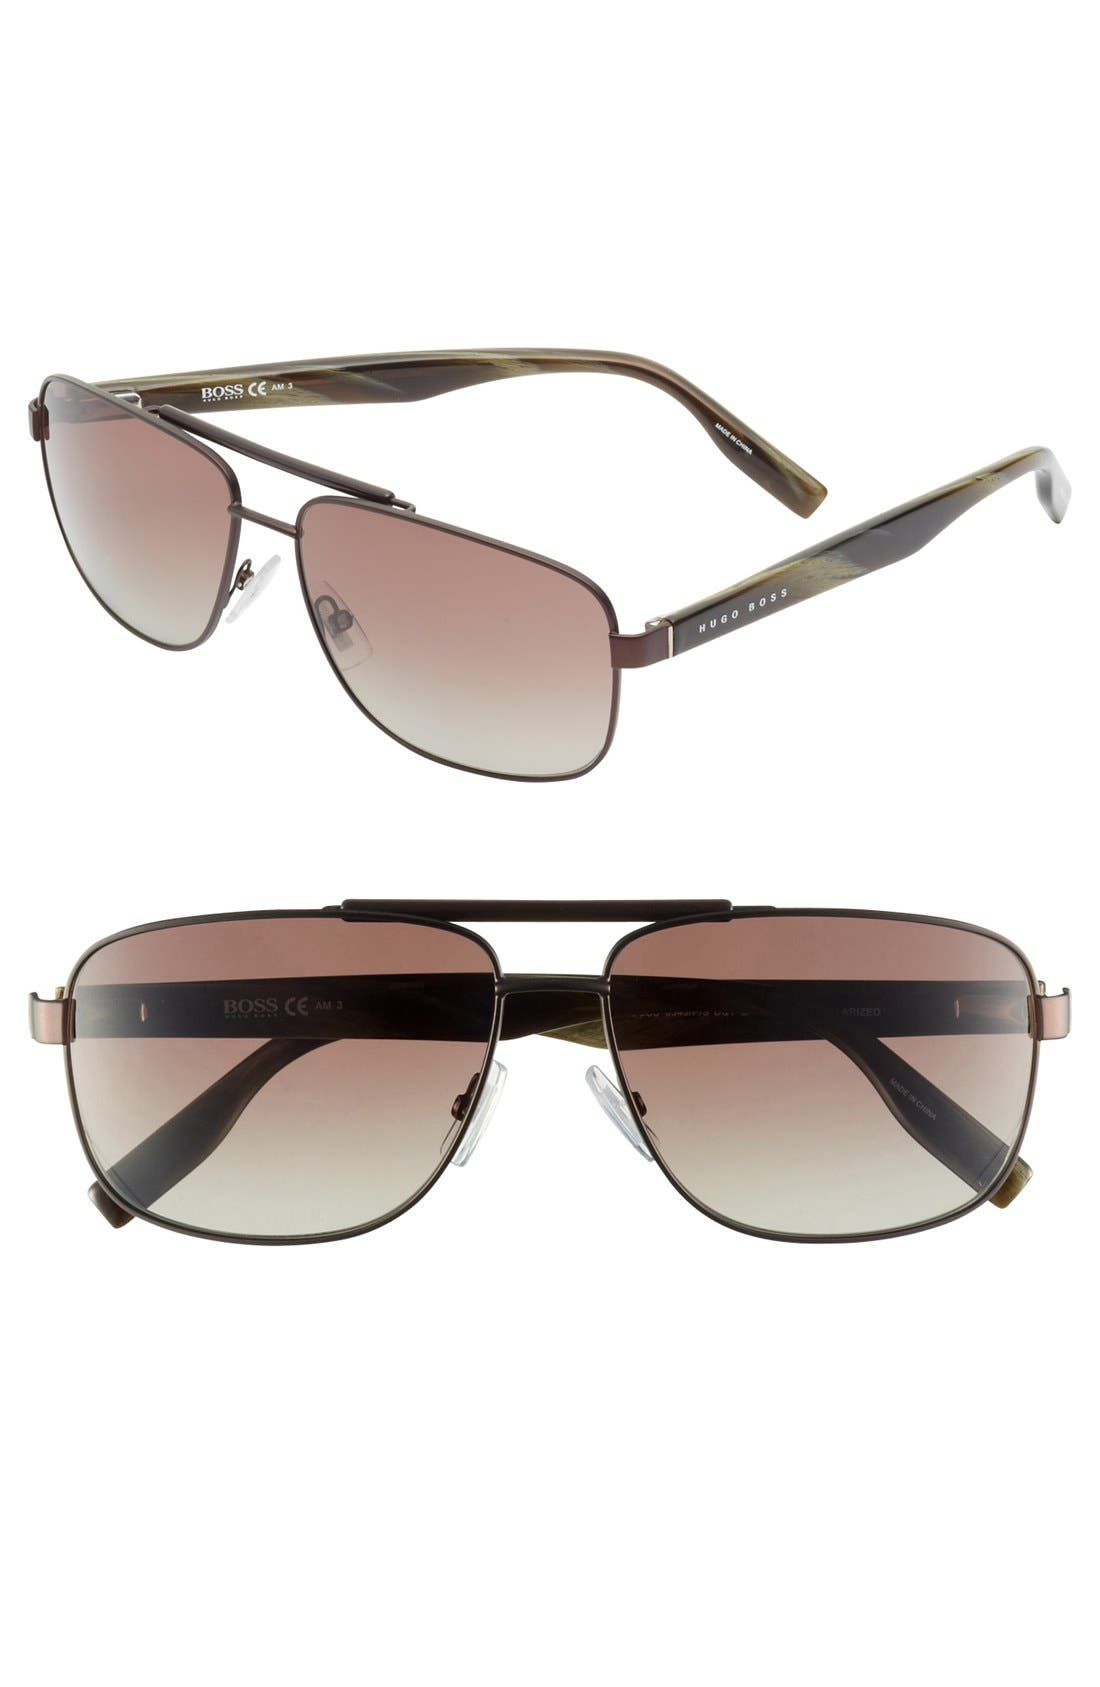 Main Image - BOSS HUGO BOSS 59mm Polarized Aviator Sunglasses